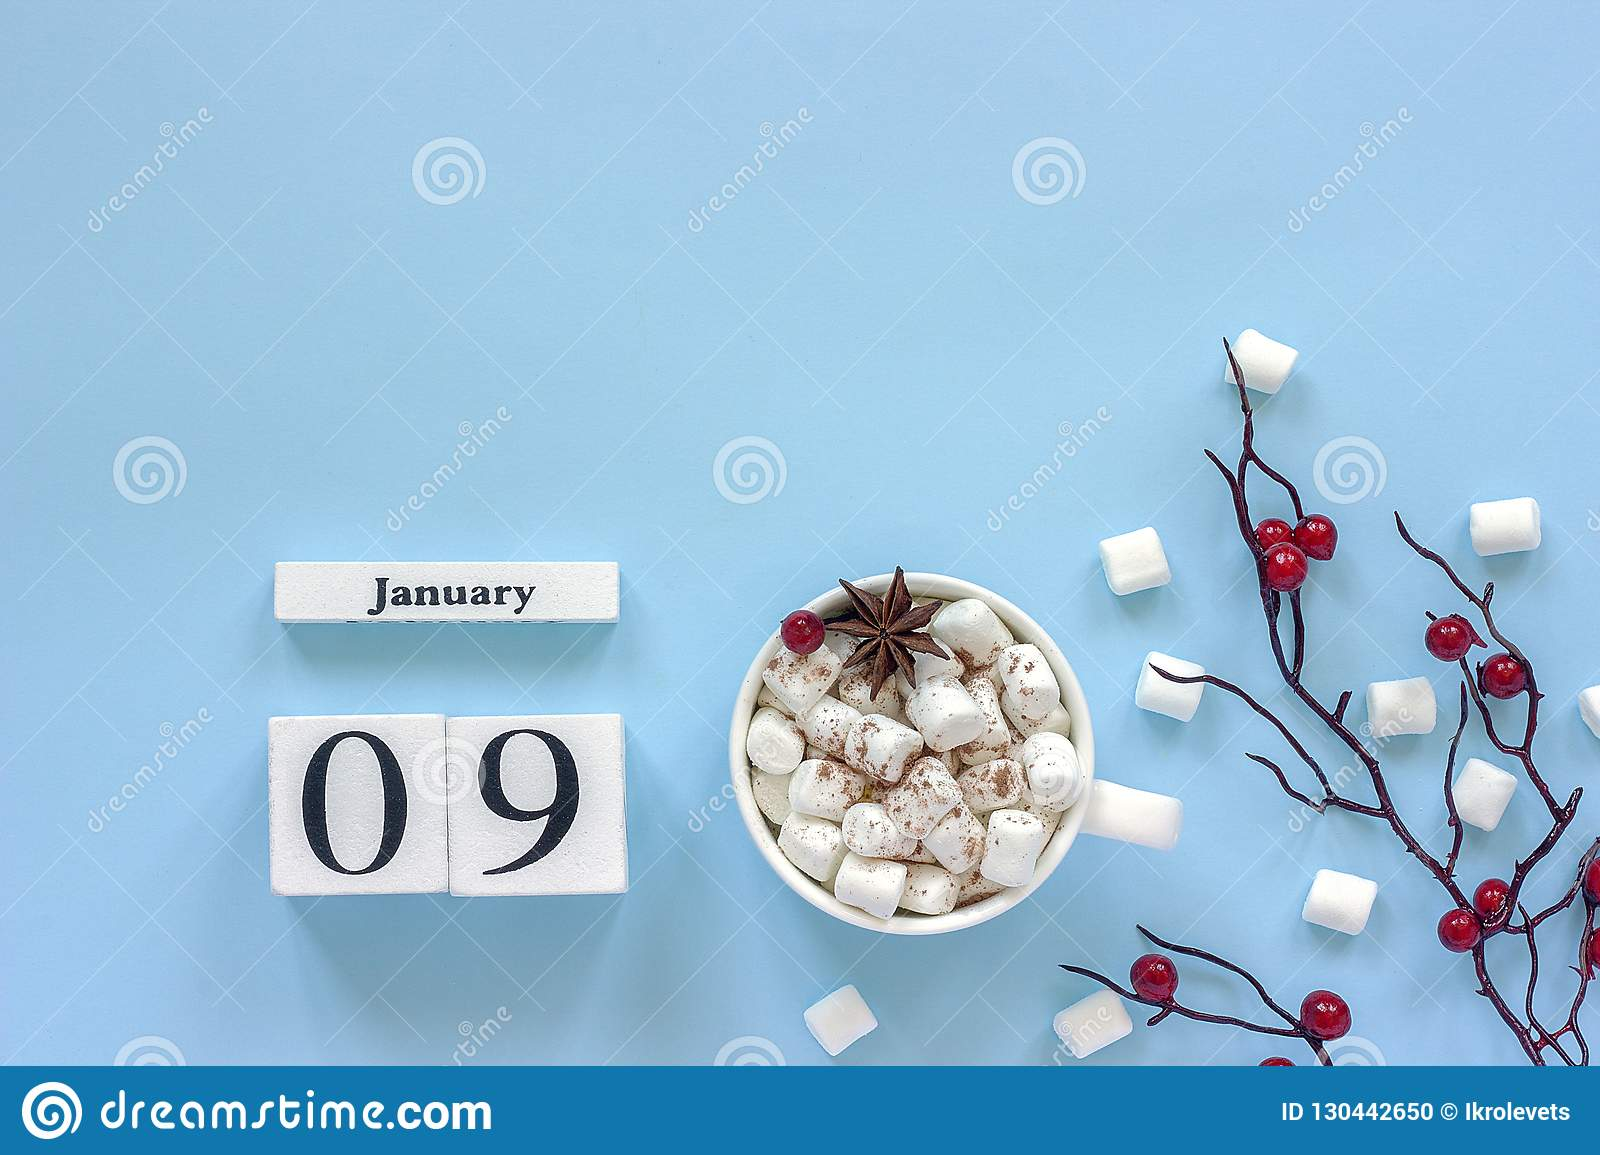 Calendar January 9 Cup of cocoa, marshmallows and branch berries